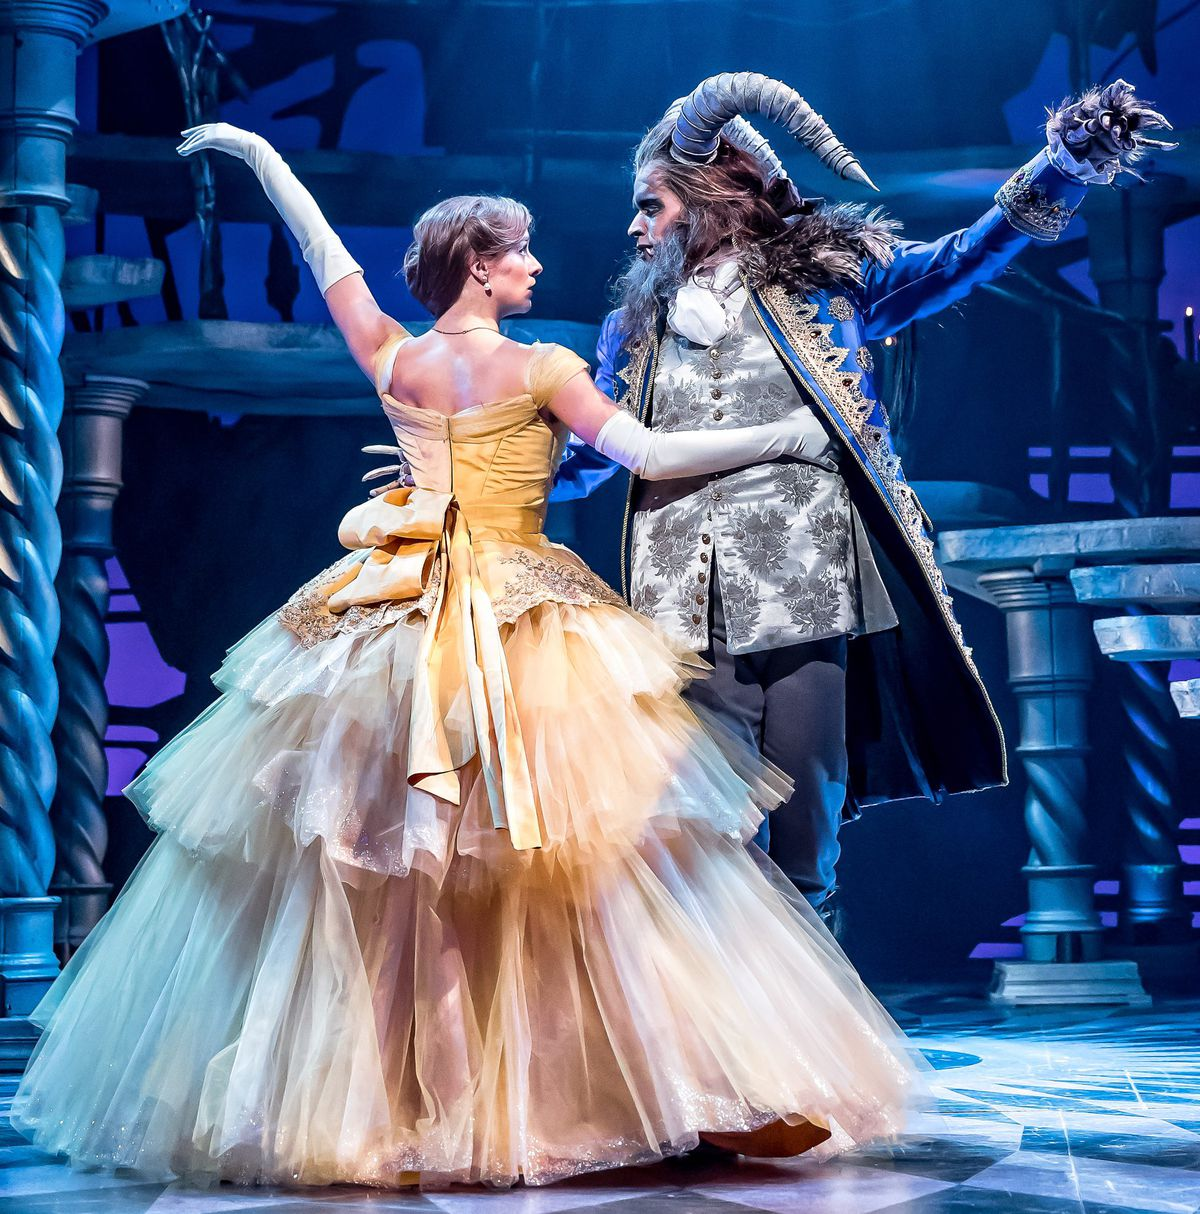 """Erica Stephan and Brandon Contreras star in """"Disney's Beauty and the Beast"""" at the Drury Lane Theatre in Oakbrook Terrace. 